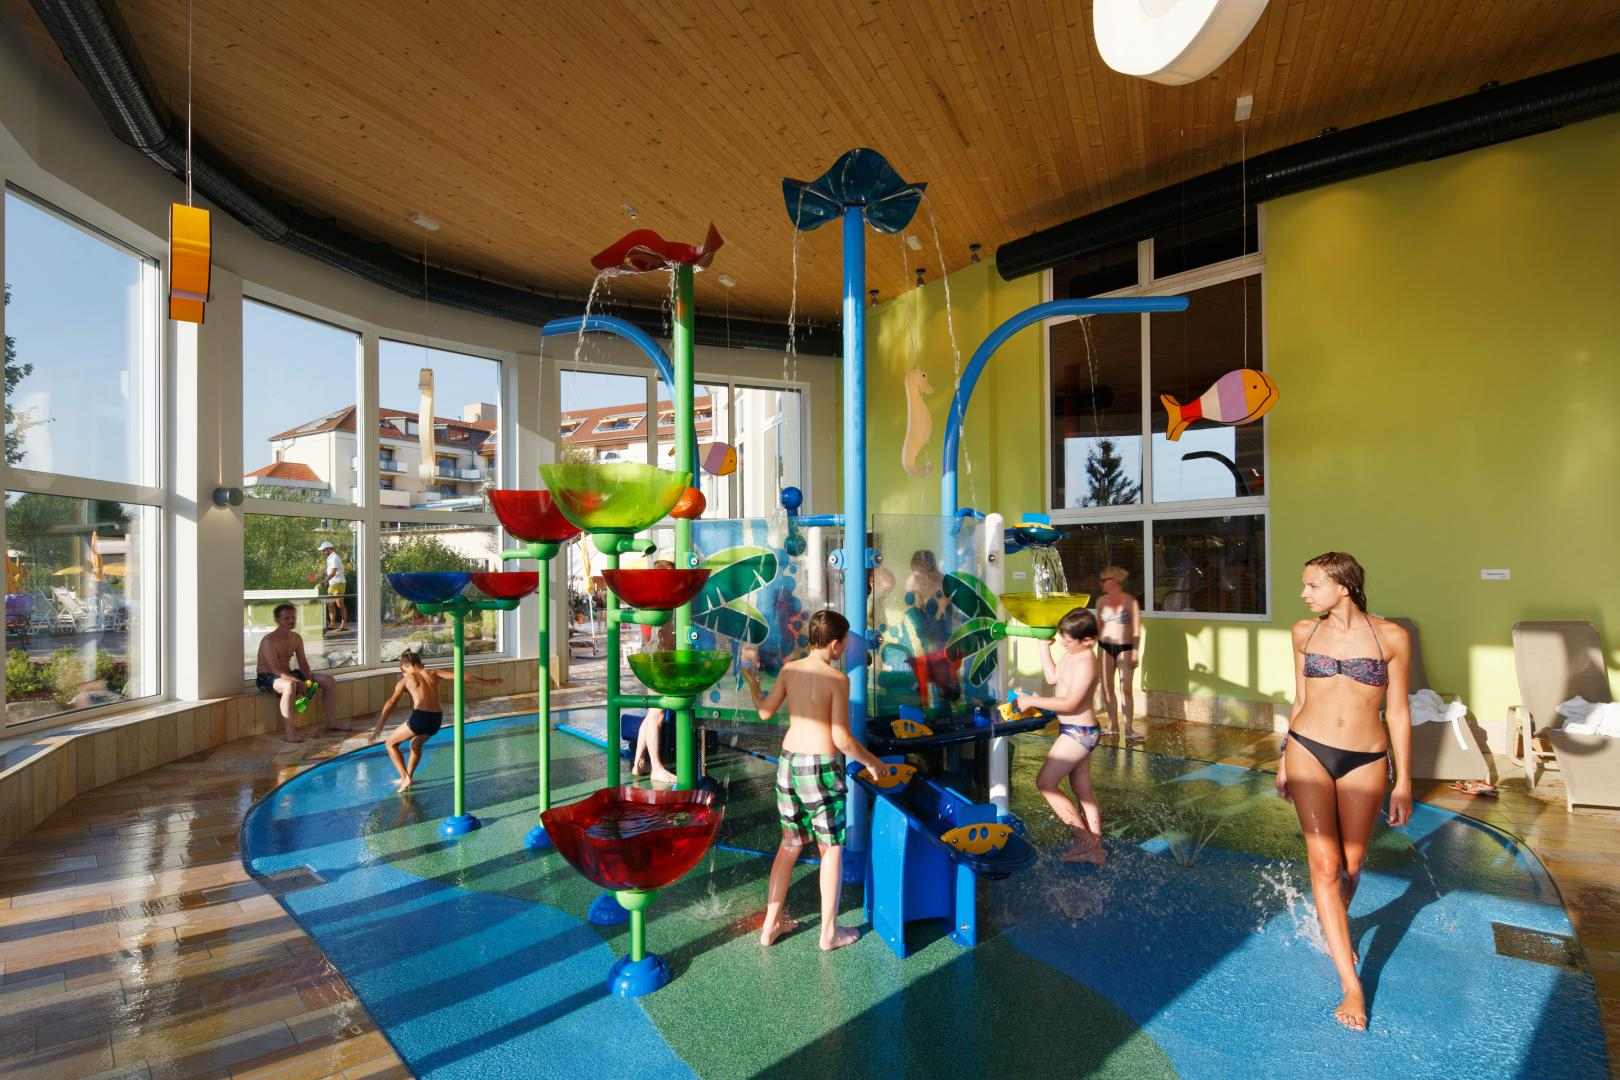 Vortex Aquatic Structure - Reiters Finest Family Hotel Project